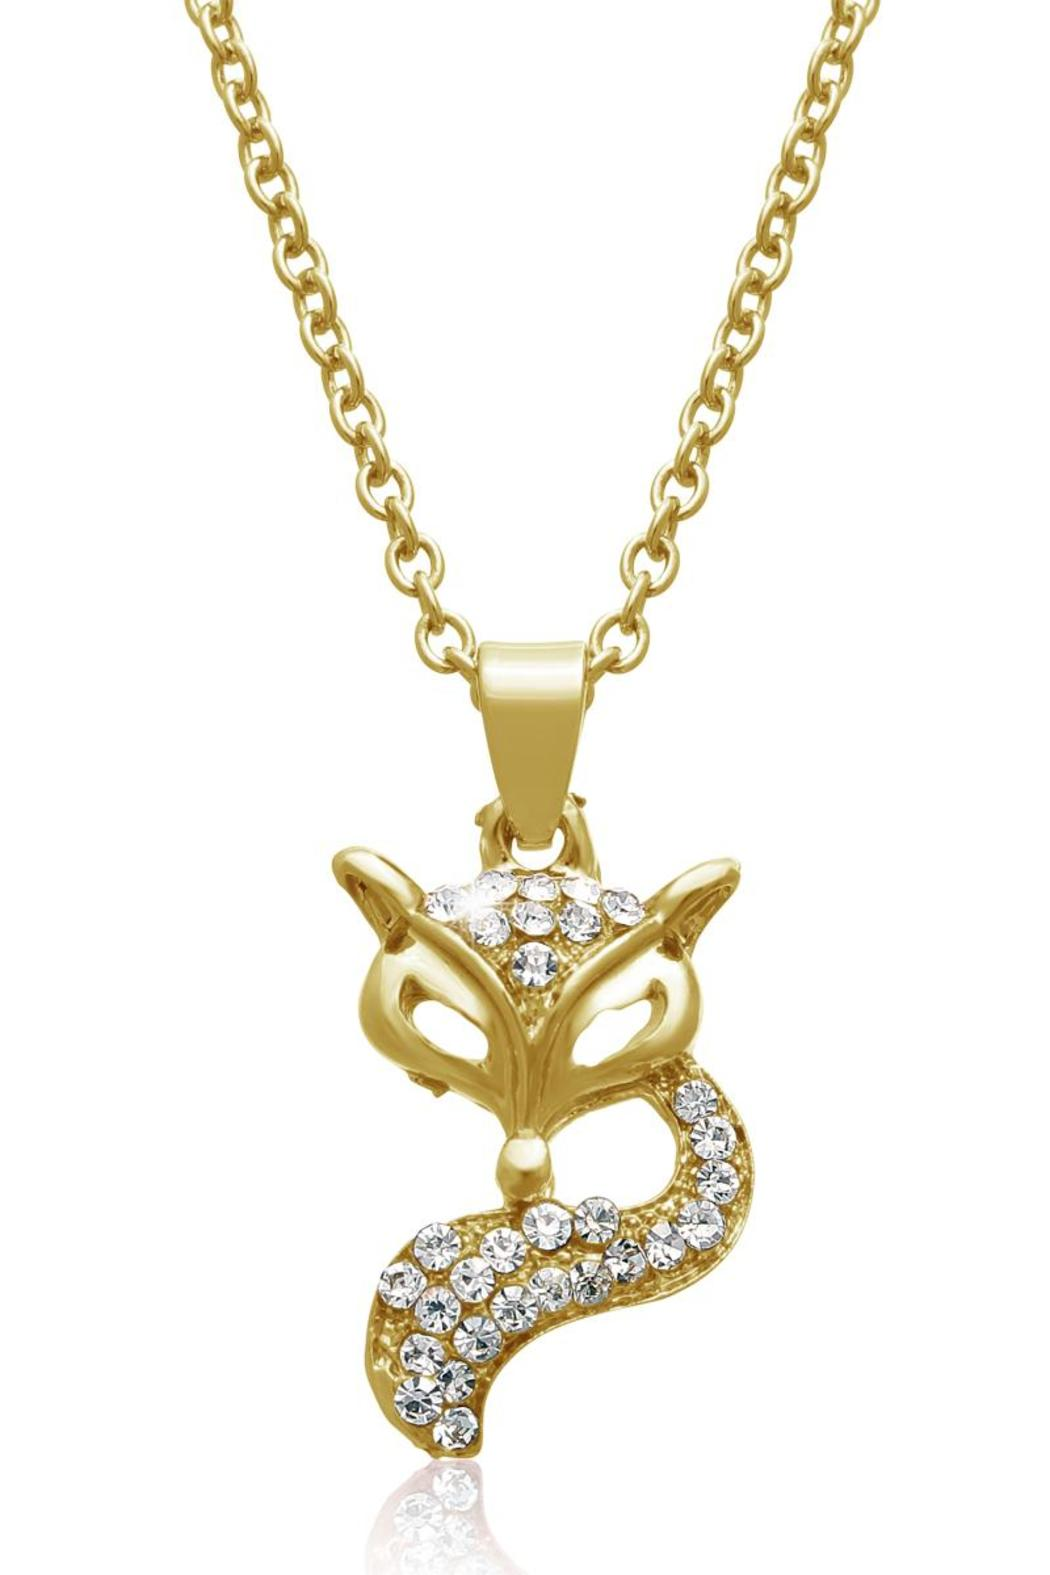 Passiana Gold Fox Necklace From Manhattan By 6th Borough